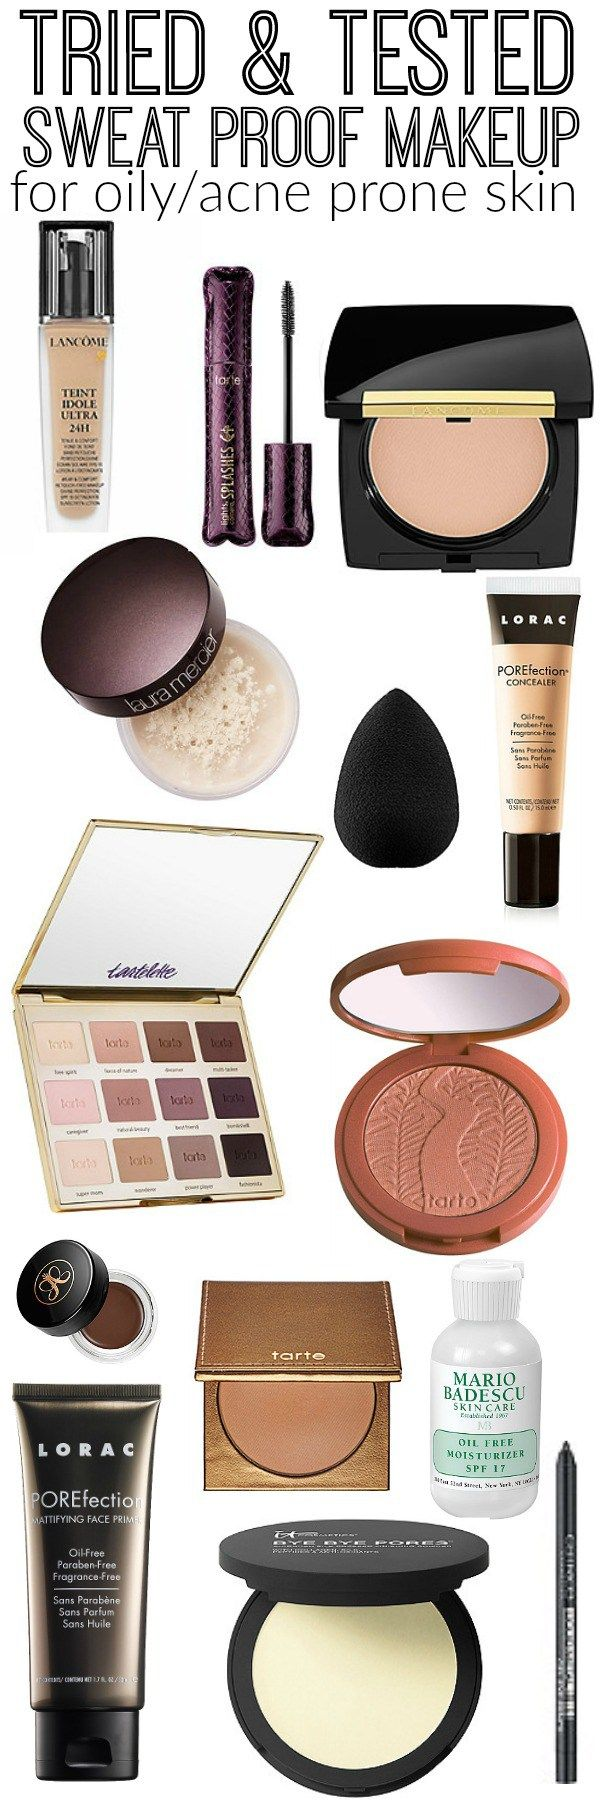 Seriously sweat proof makeup! The best makeup products for oily & acne prone skin! A must pin for those who want makeup to last all day without getting oily & without causing breakouts